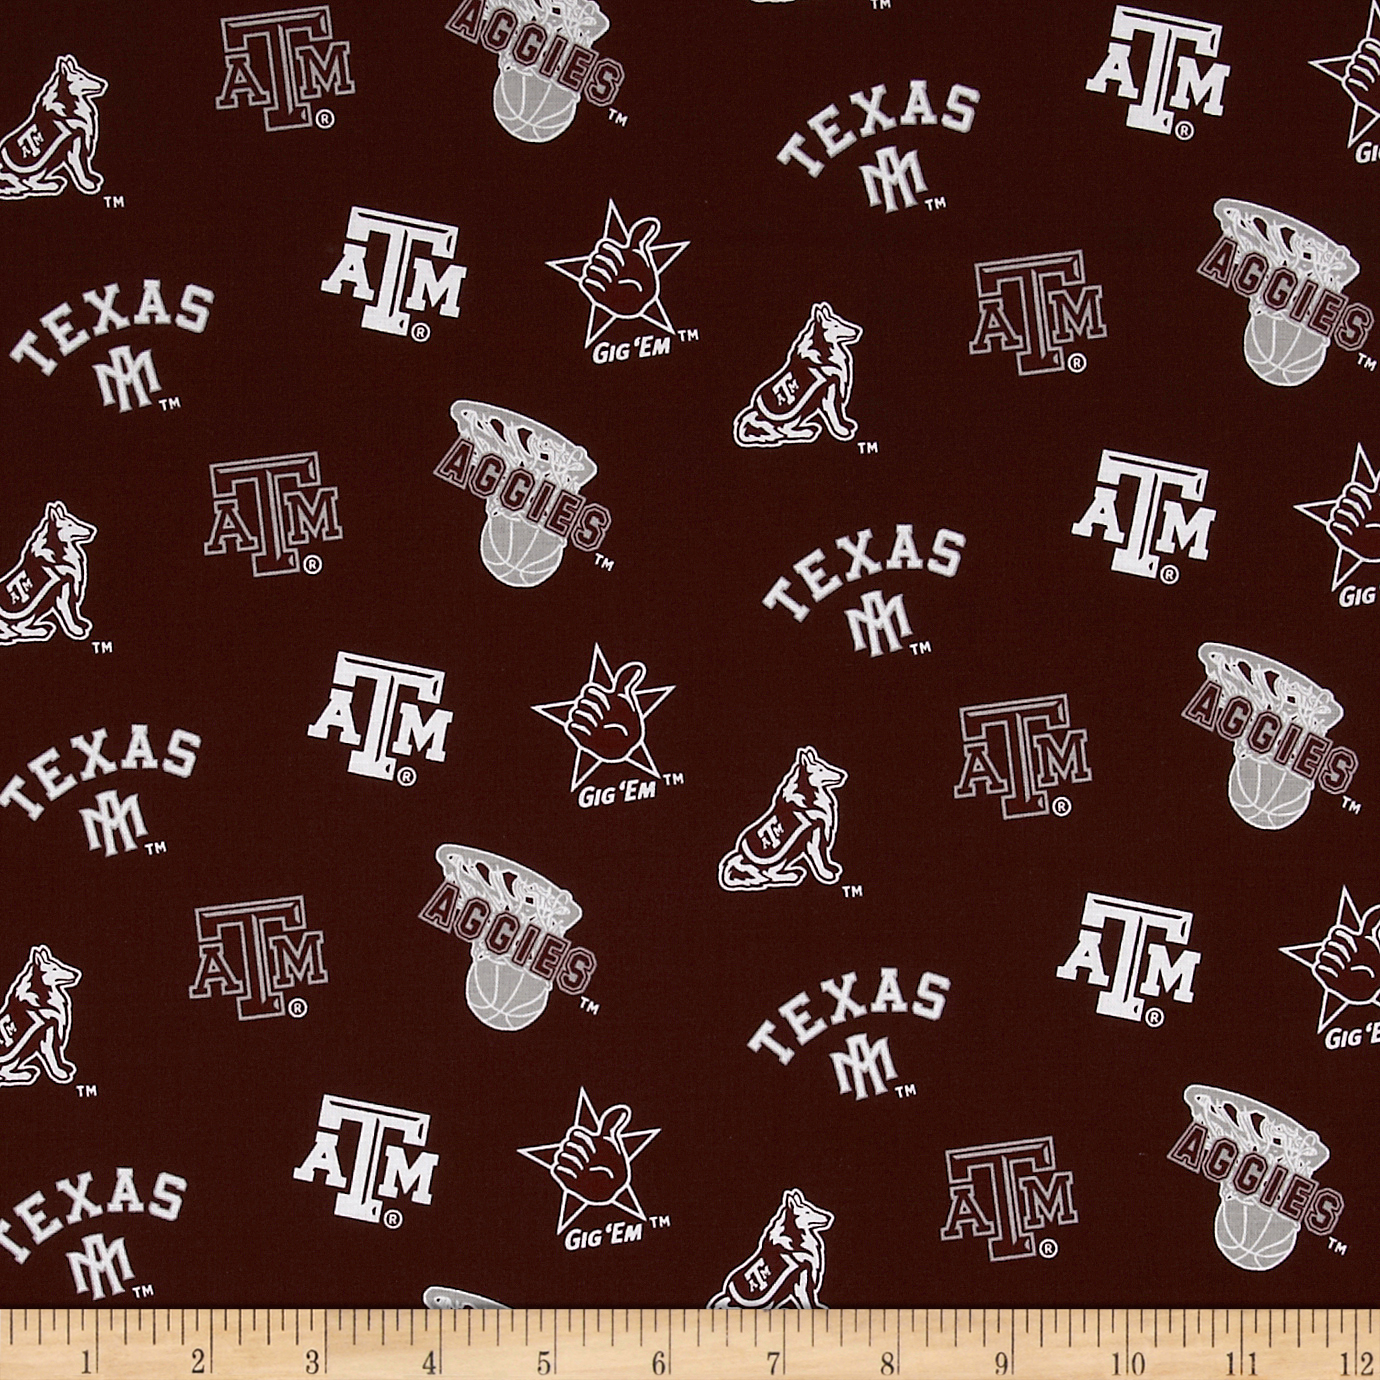 Collegiate Cotton Broadcloth Texas A&M Maroon Fabric